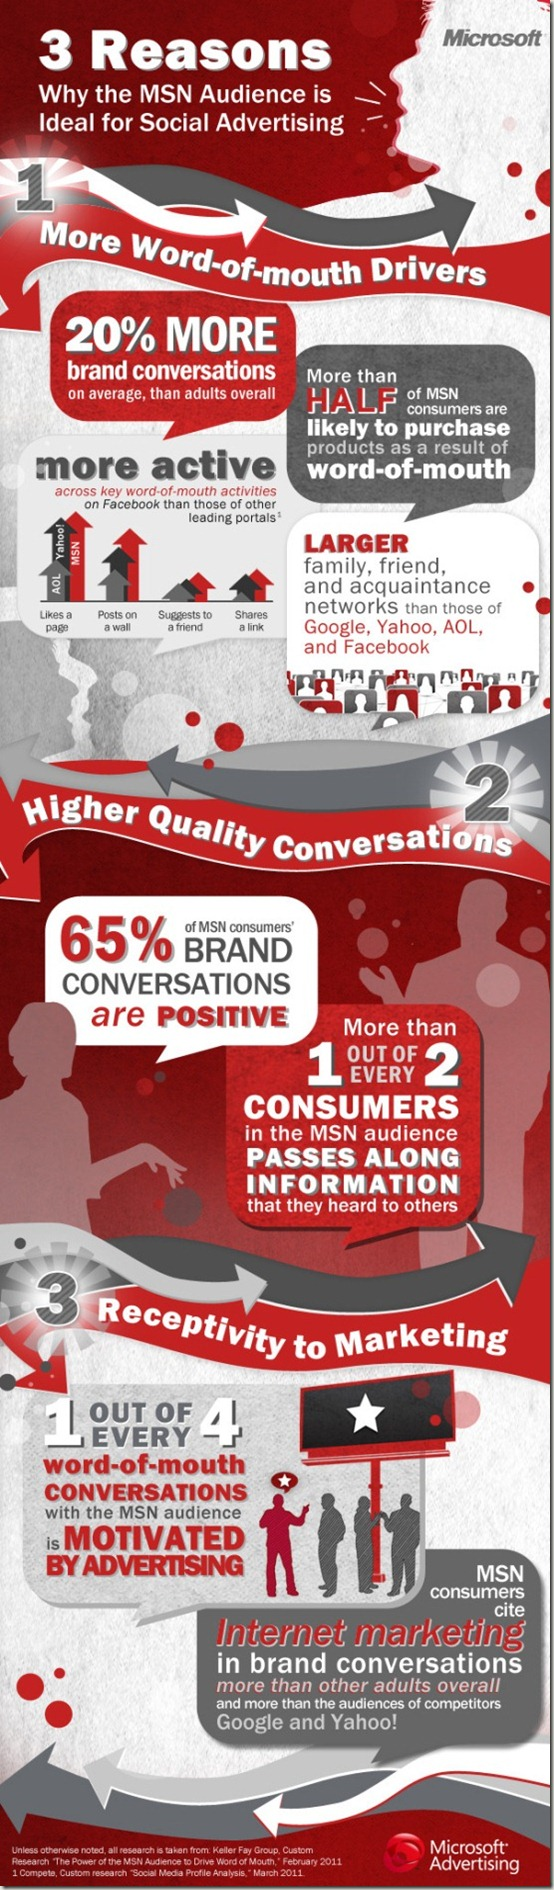 Social-Media-Infographic-Word-of-Mouth-MSN-Microsoft-Advertising-1